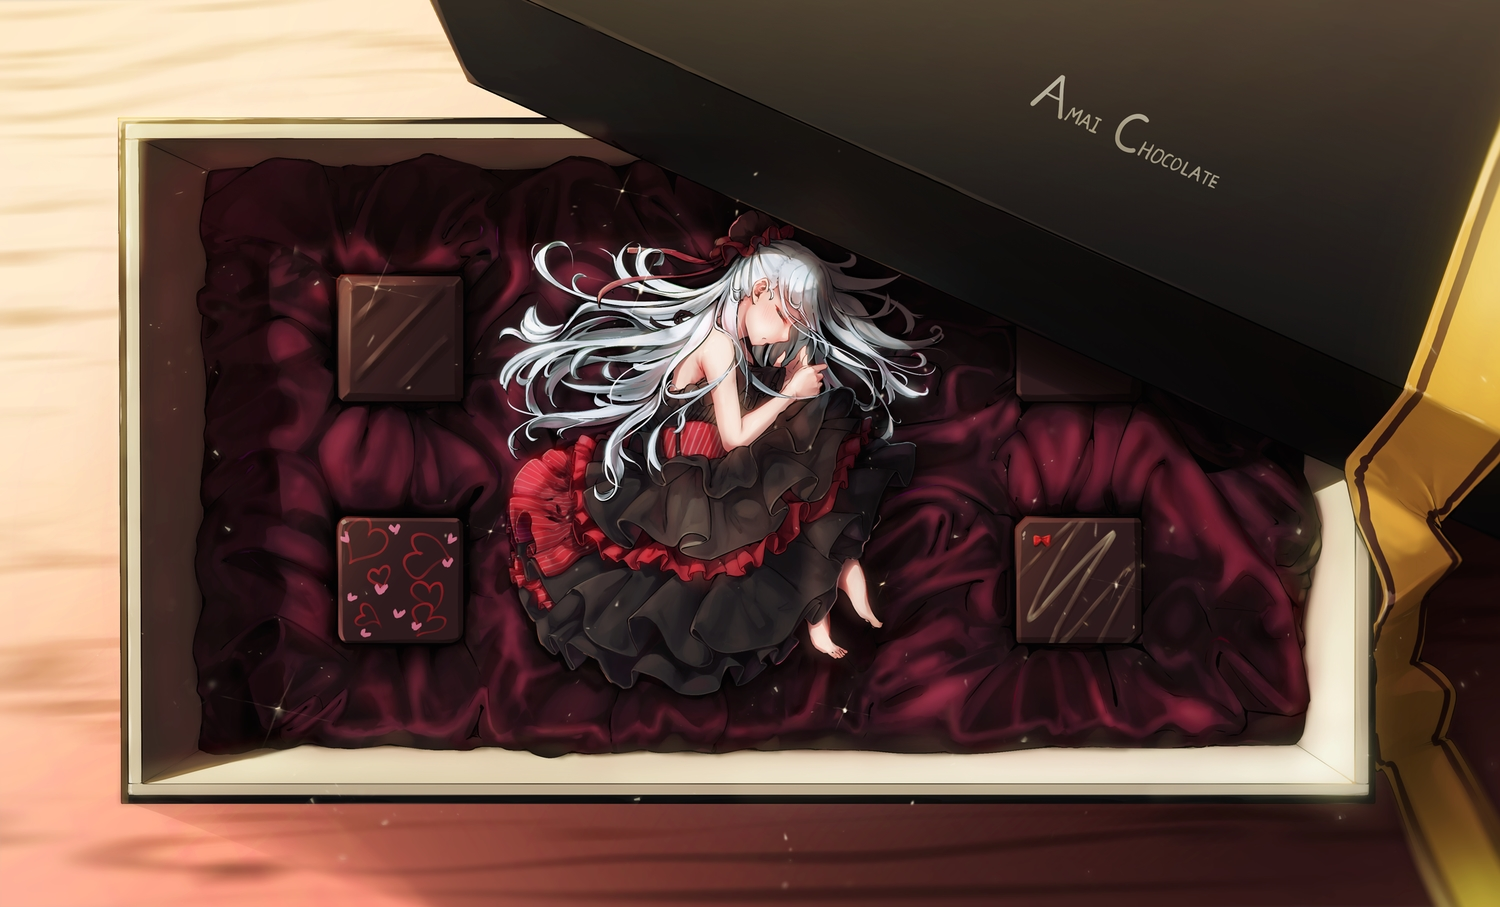 amamami_prime barefoot candy chocolate dress gothic gray_hair long_hair original valentine